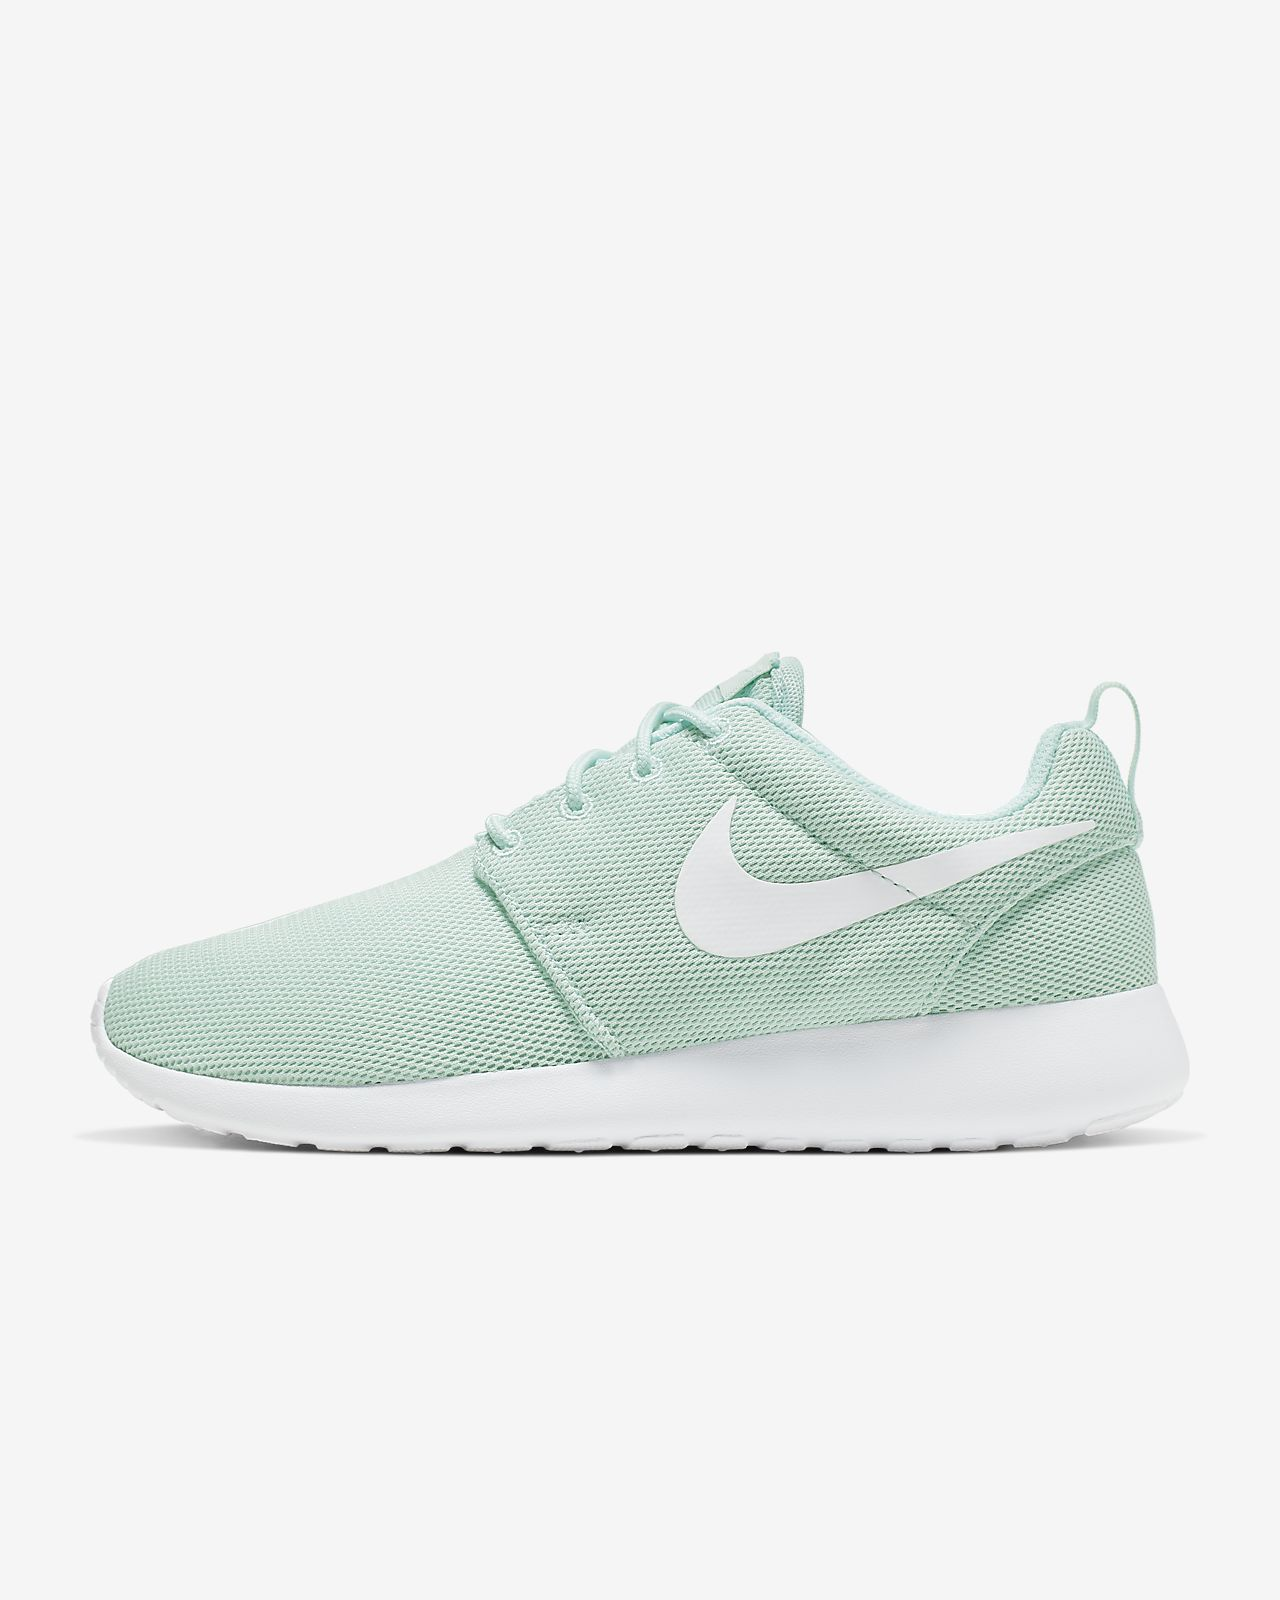 buy popular 0ca5a 44b54 Nike Roshe One Women's Shoe. Nike.com